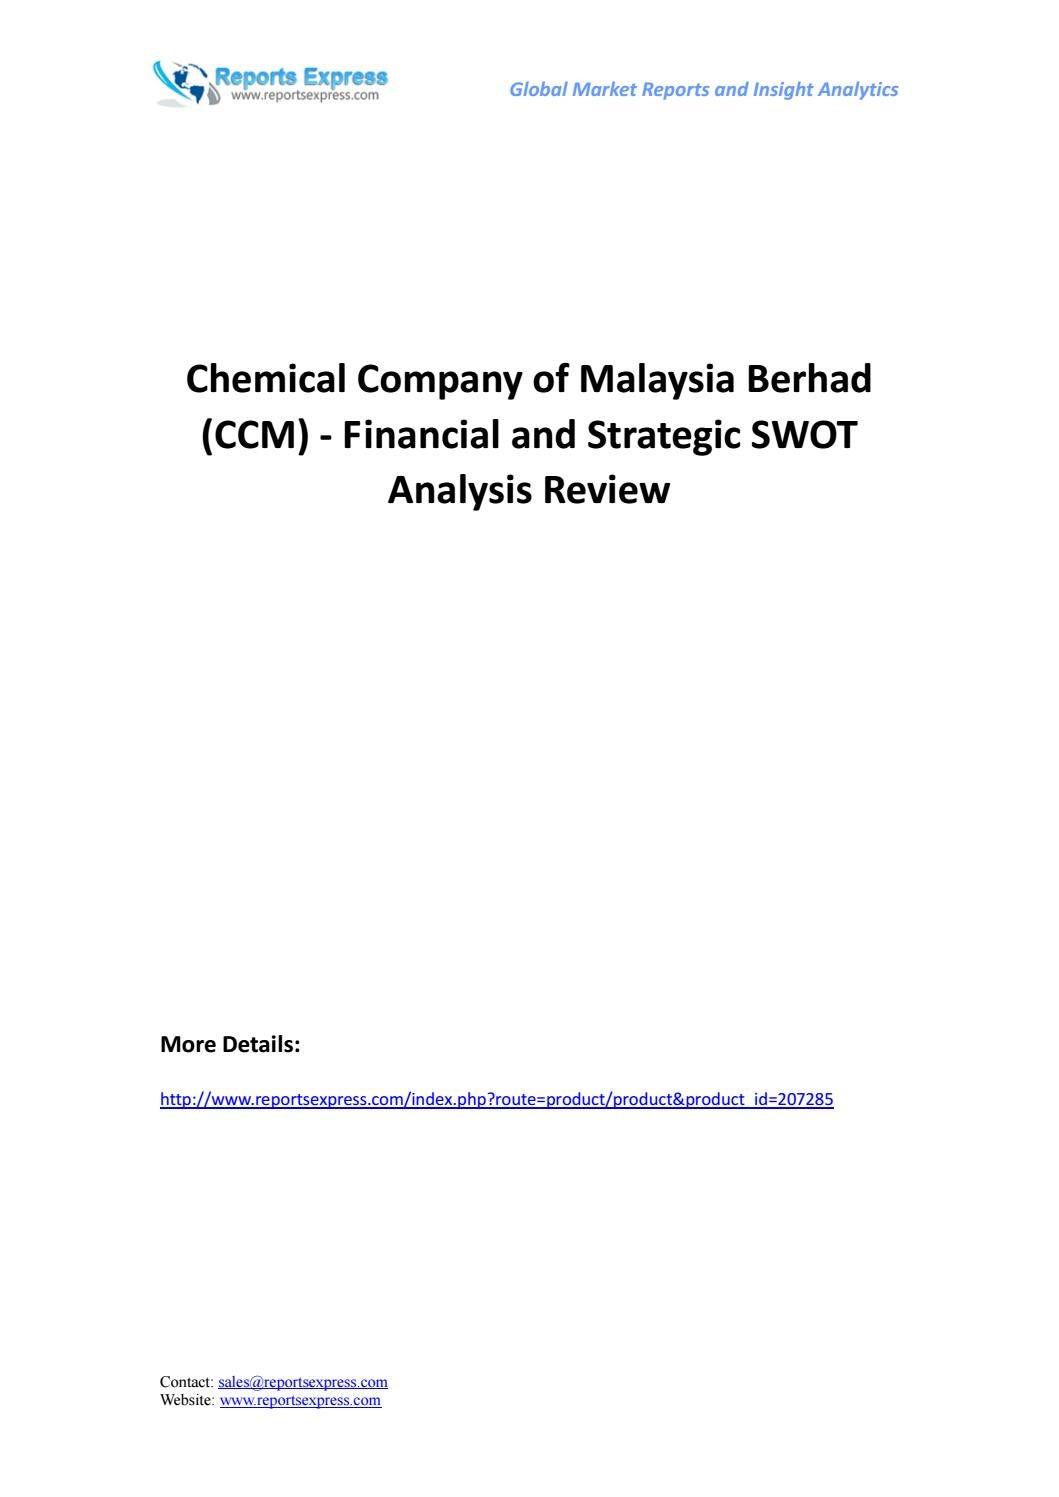 Chemical company of malaysia berhad (ccm) financial and strategic